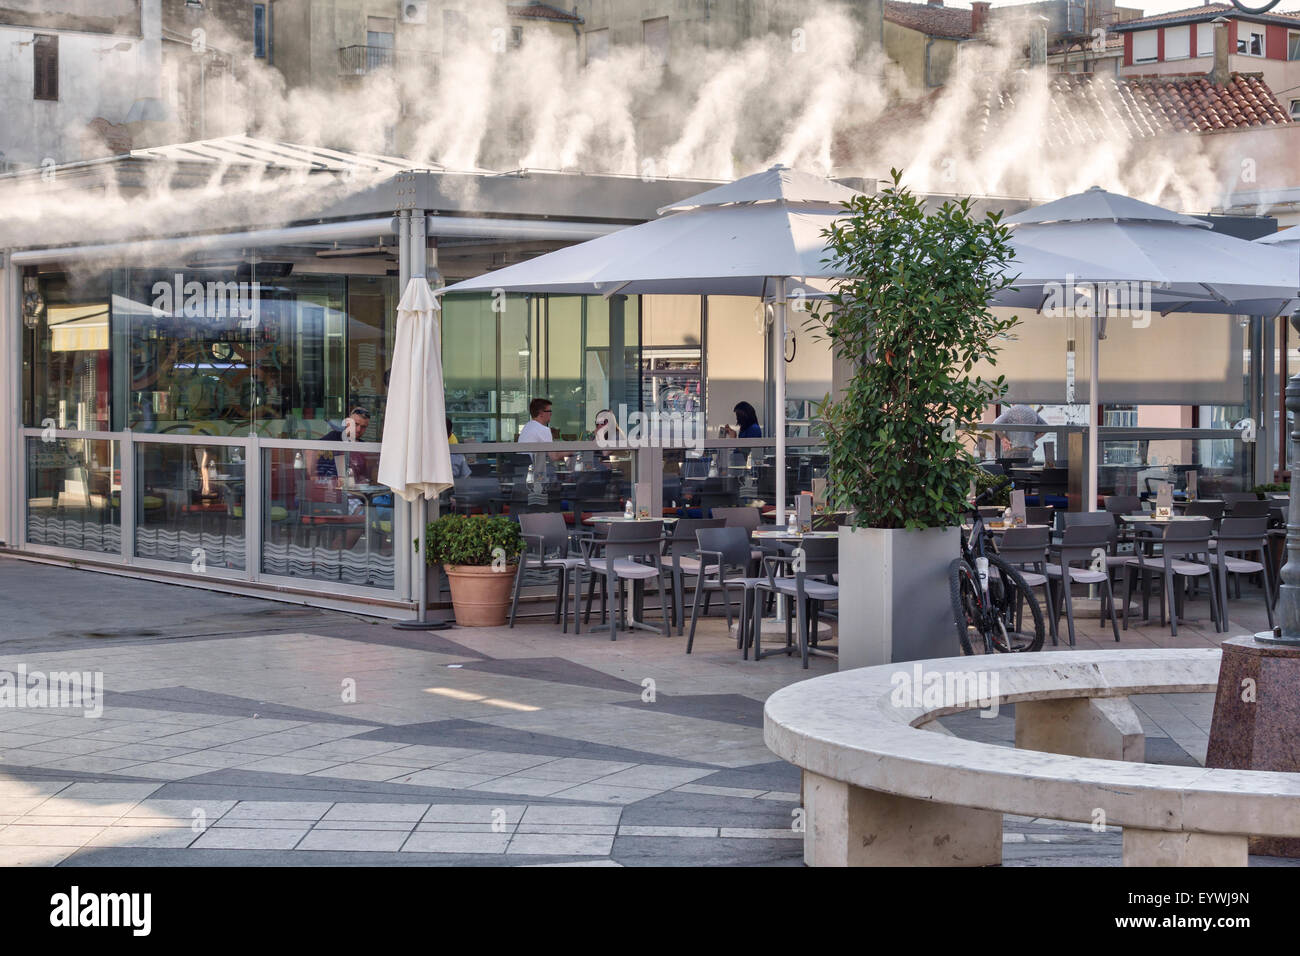 Pula, Croatia. An open-air restaurant using a water mist cooling system in summer, when 40 degree temperatures are - Stock Image